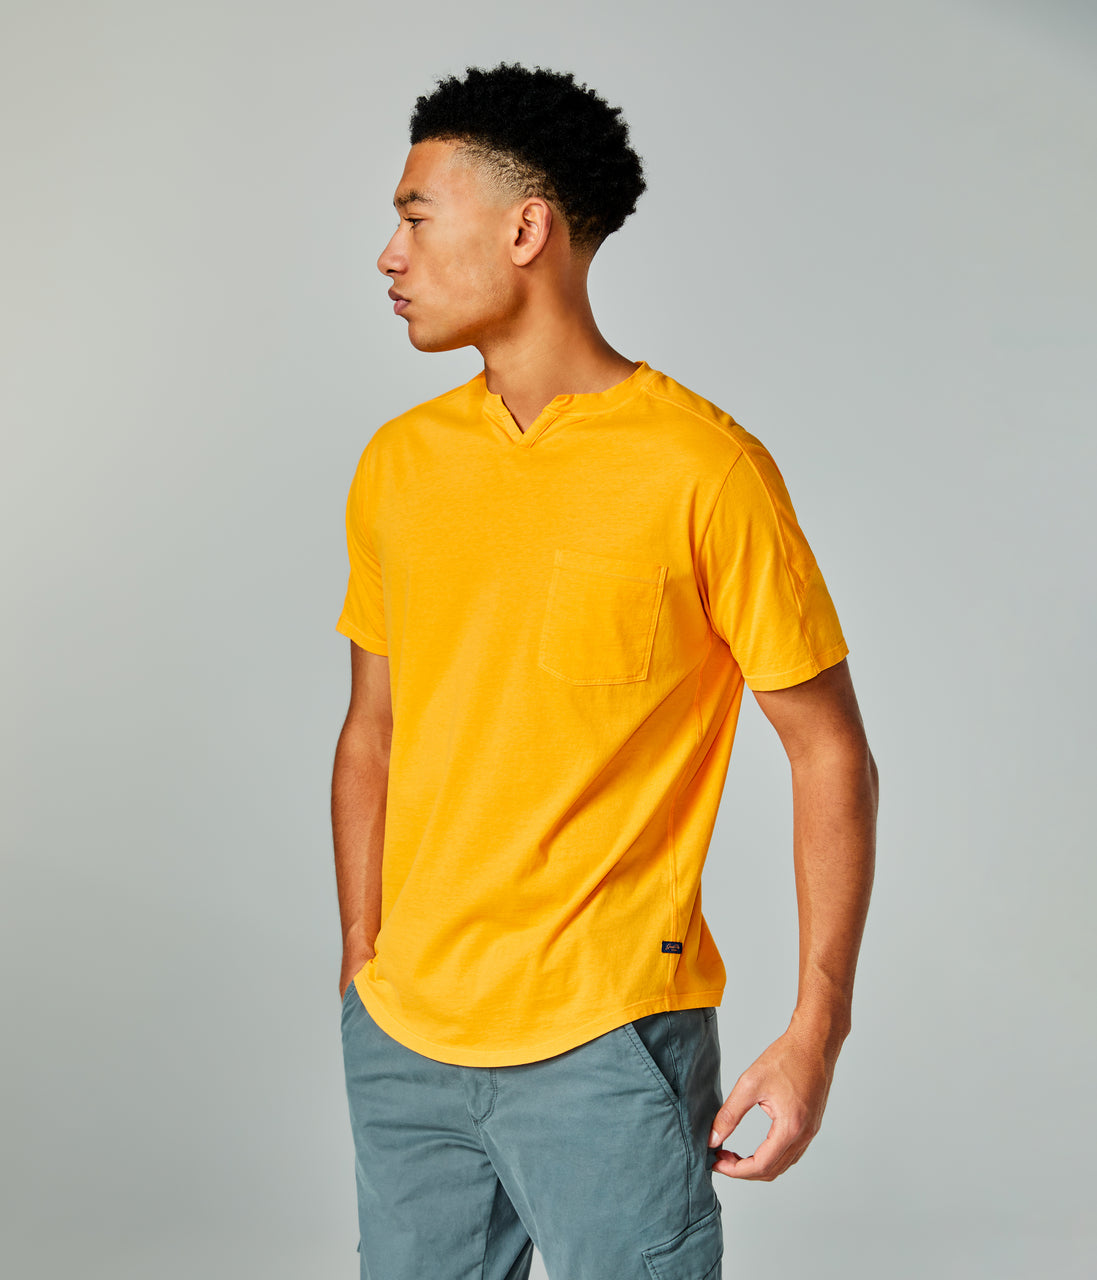 Premium Cotton Jersey Notch Neck Crew - Blazing Orange - Good Man Brand - Premium Cotton Jersey Notch Neck Crew - Blazing Orange